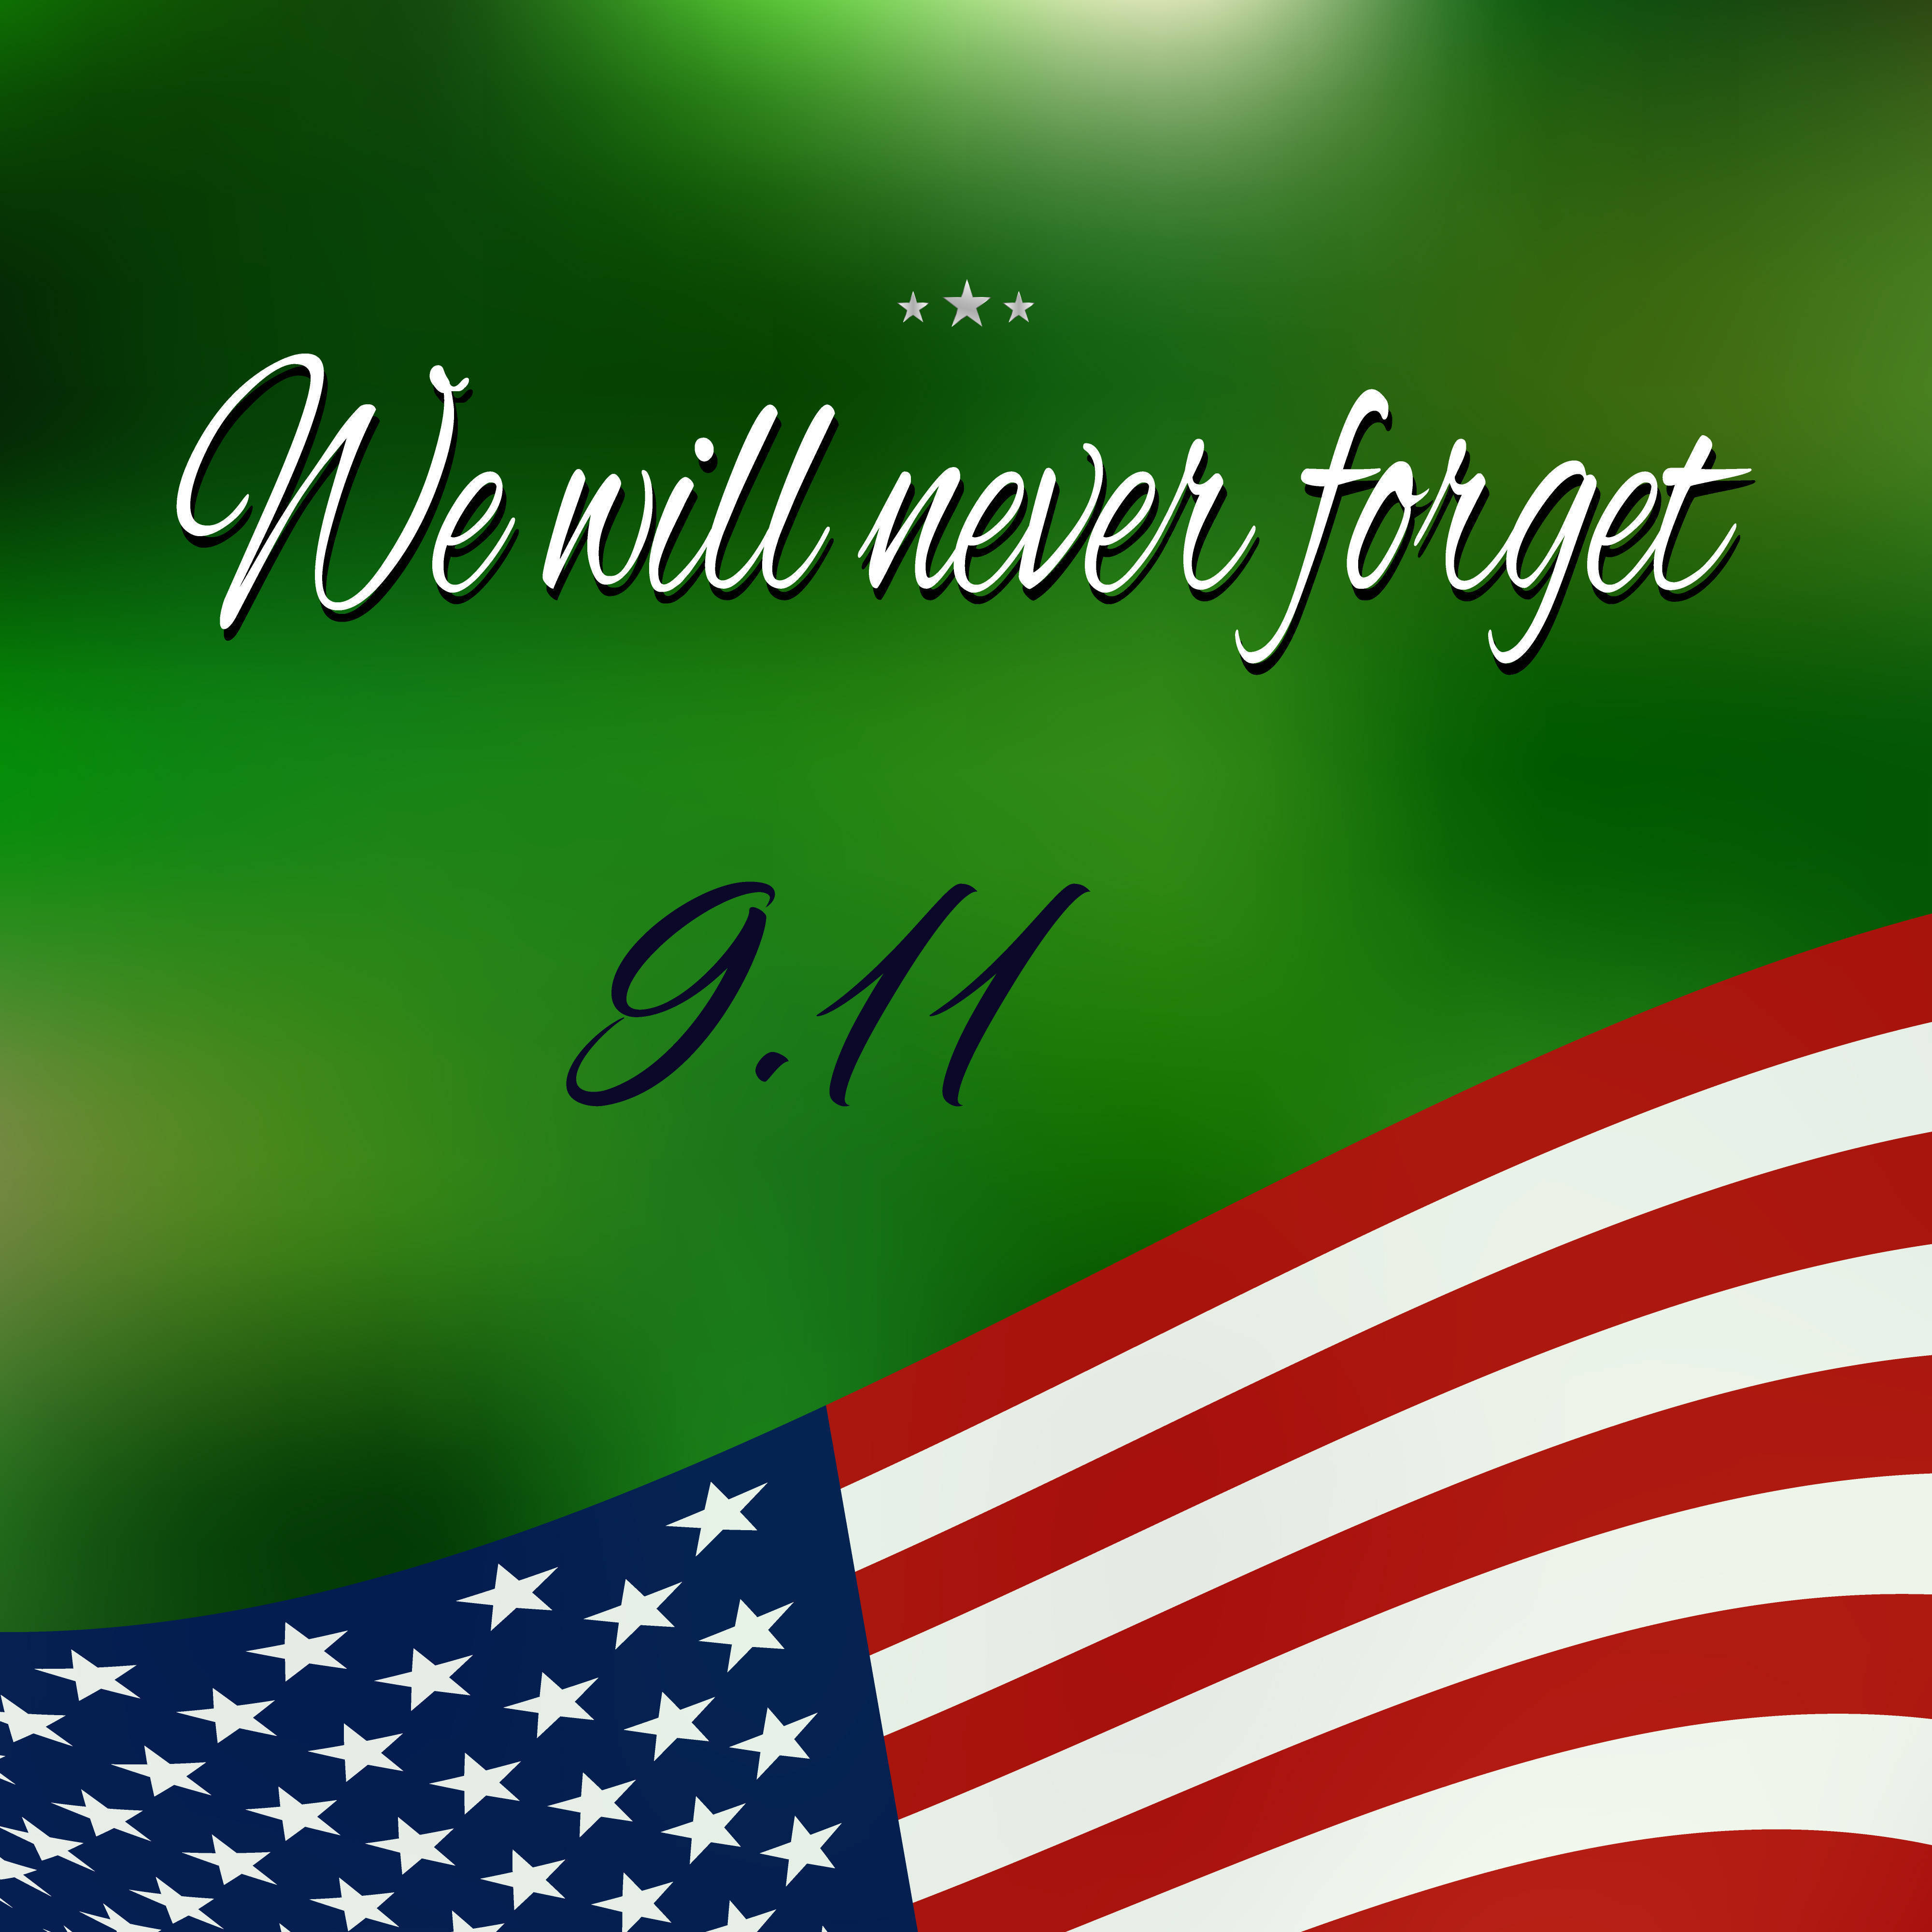 Nutley September 11 Remembrance Ceremony Today at Town Hall